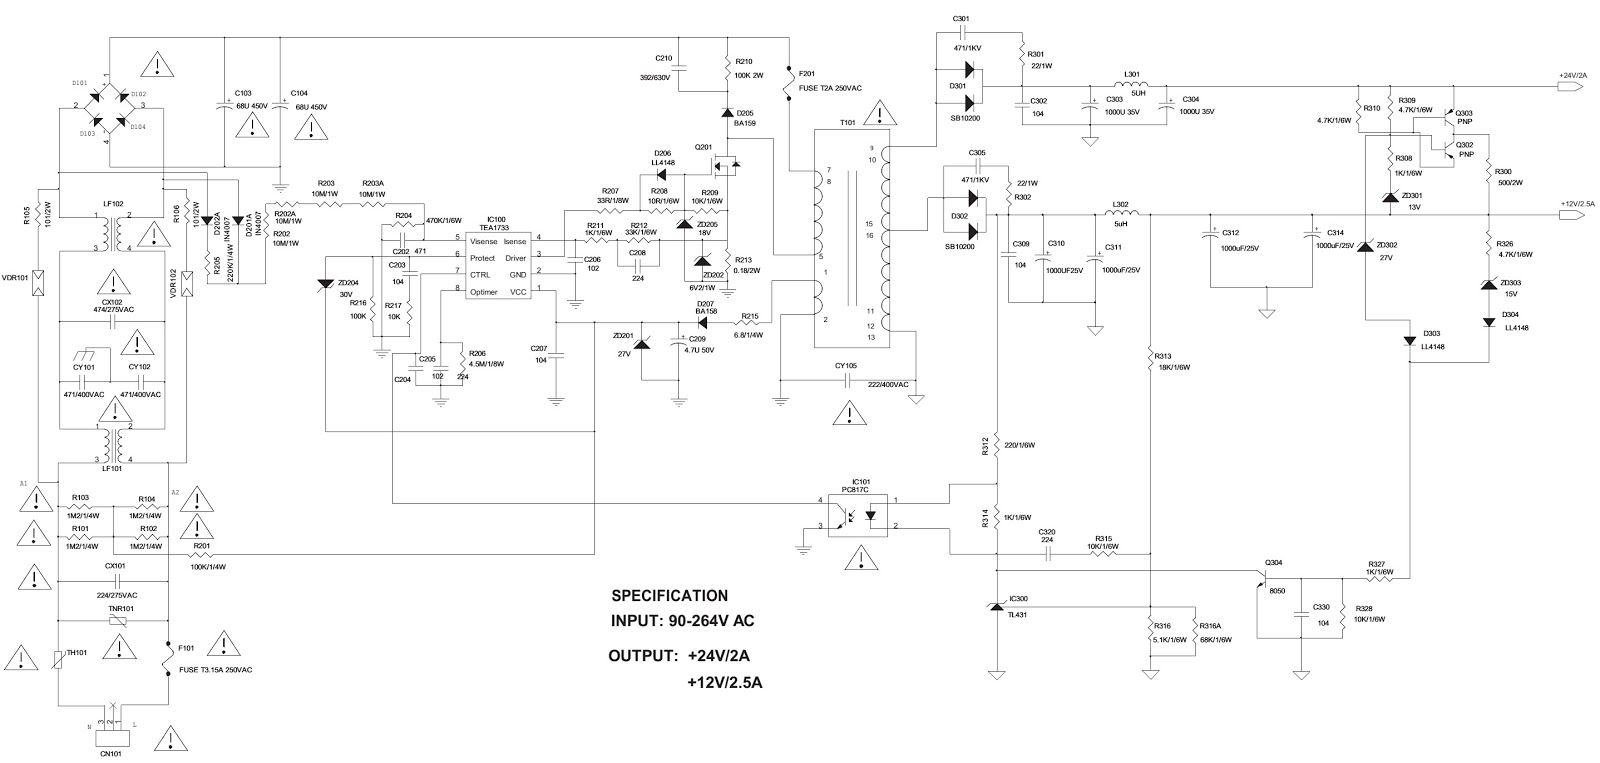 Toshiba Le3273 Le3973 Led Lcd Tv Smps Circuit Diagram Le3273aw Schematic